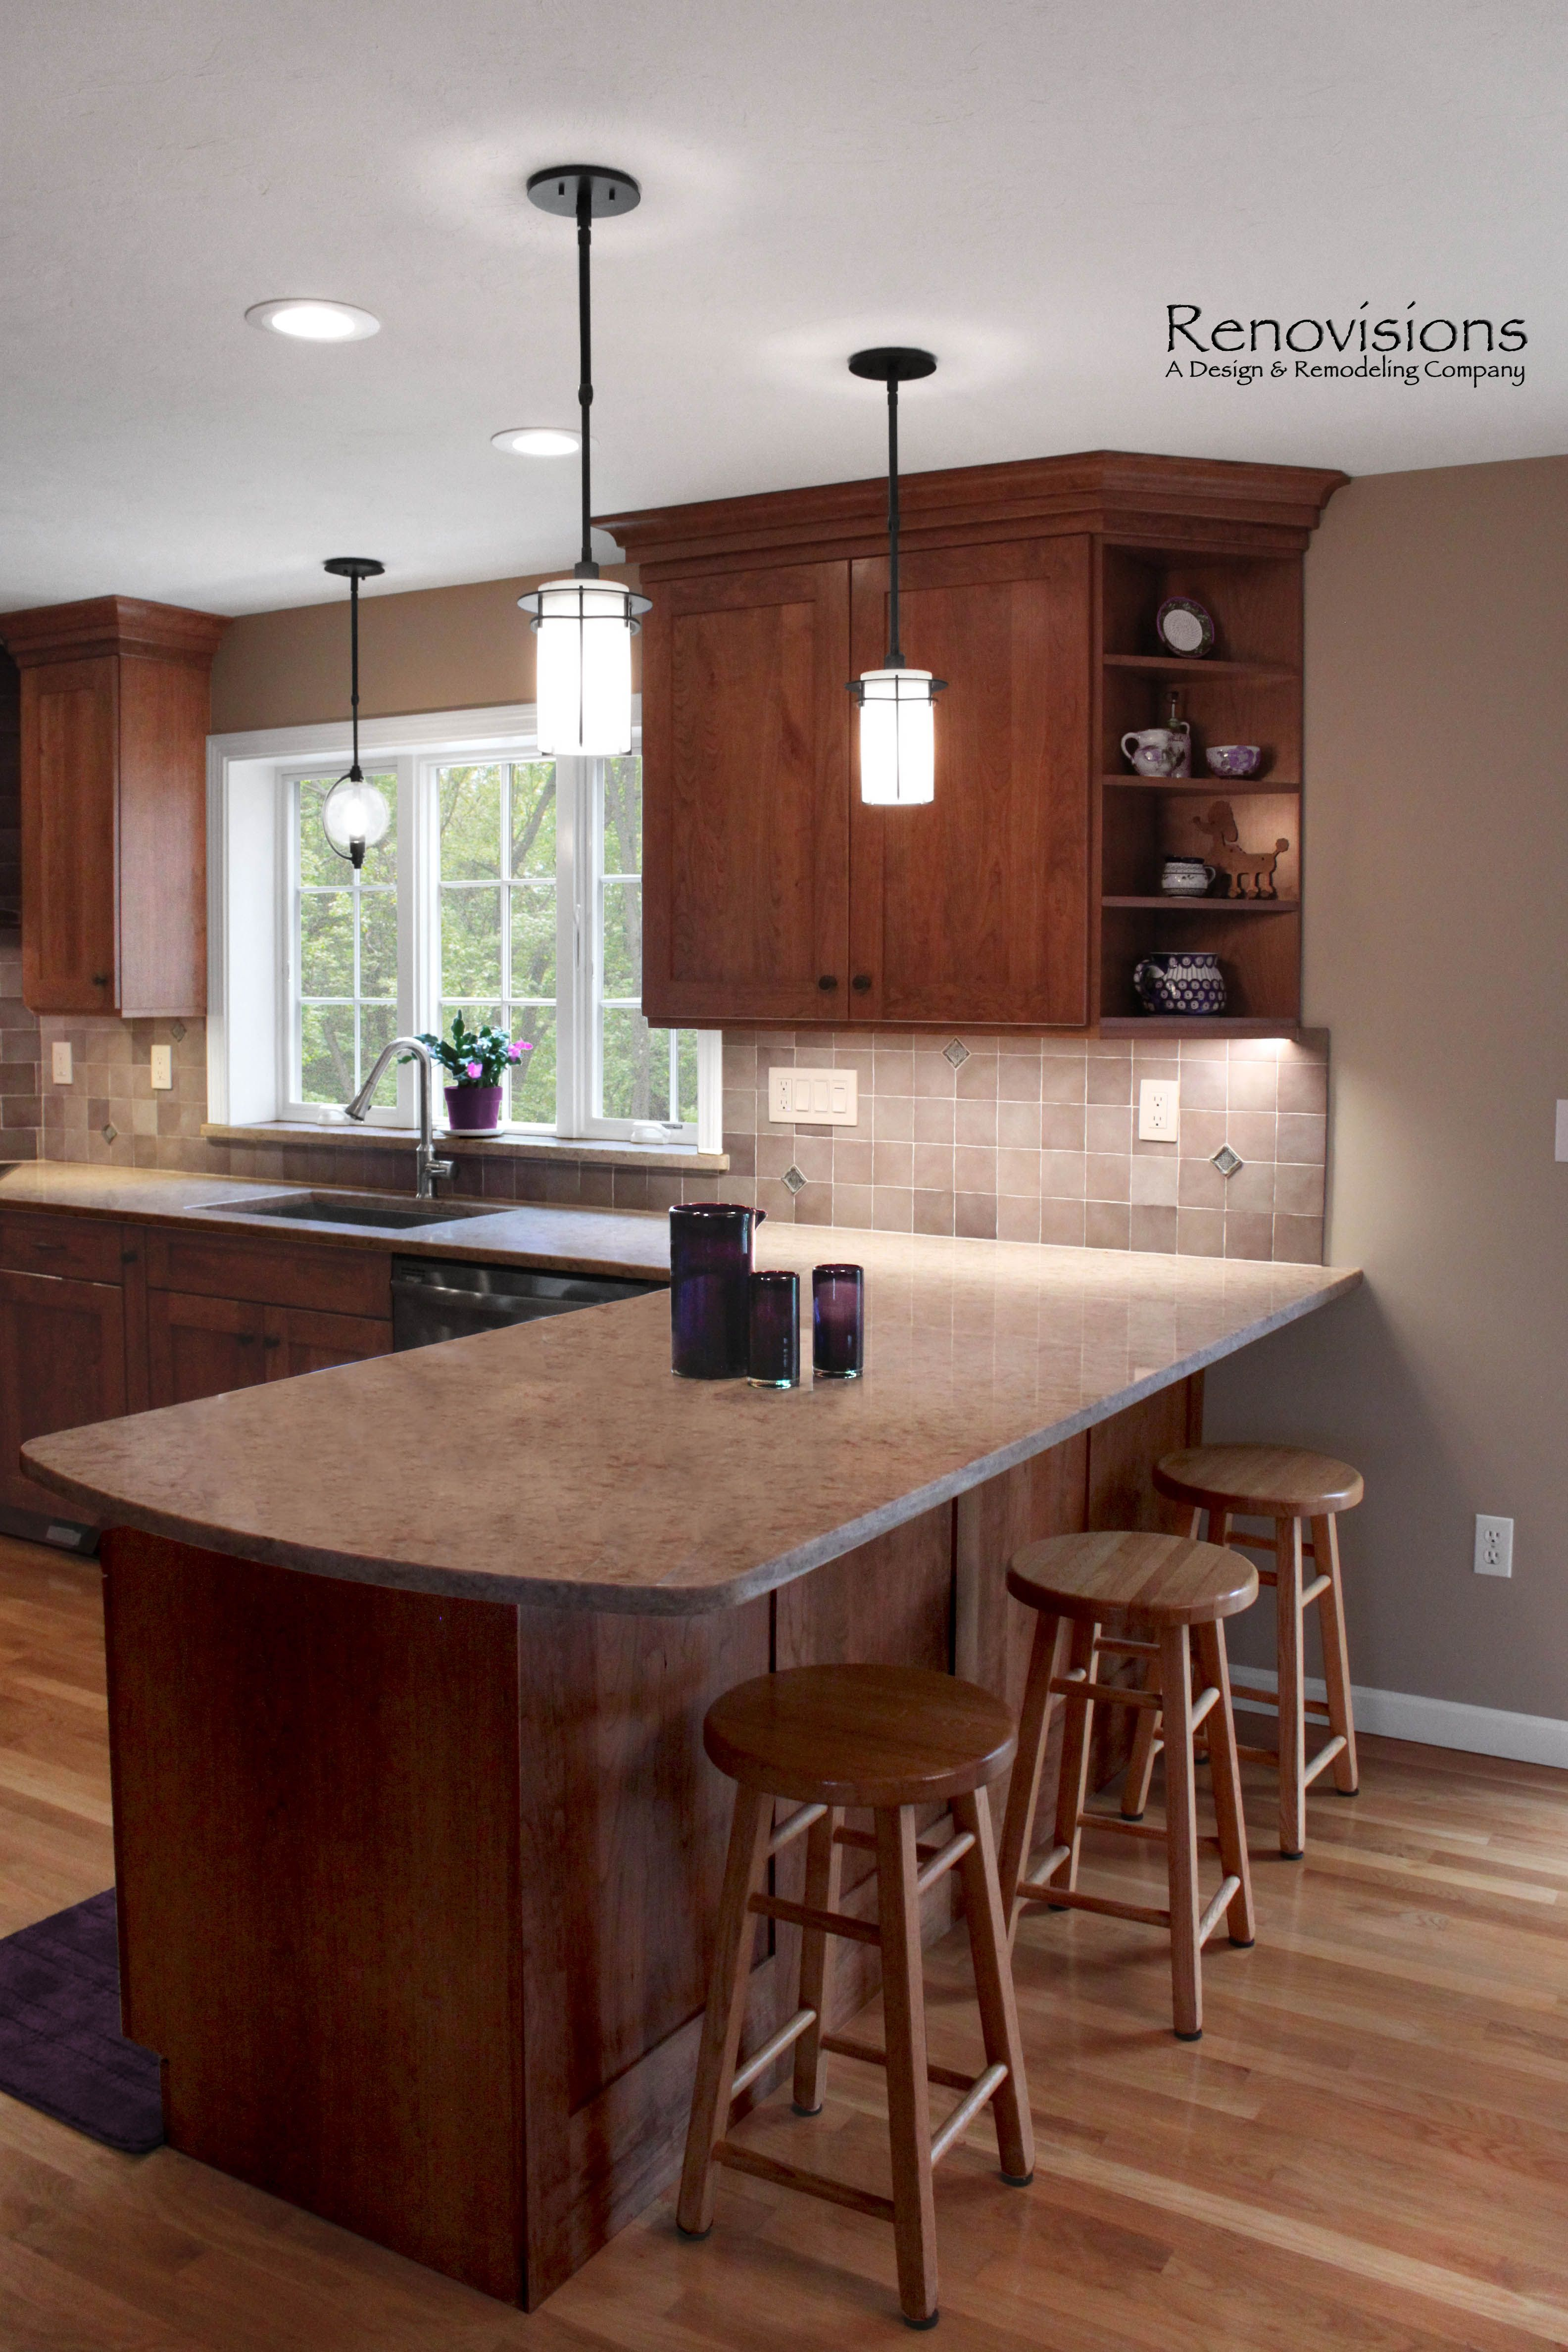 Kitchen Remodel By Renovisions Cherry Cabinets Shaker Cabinets